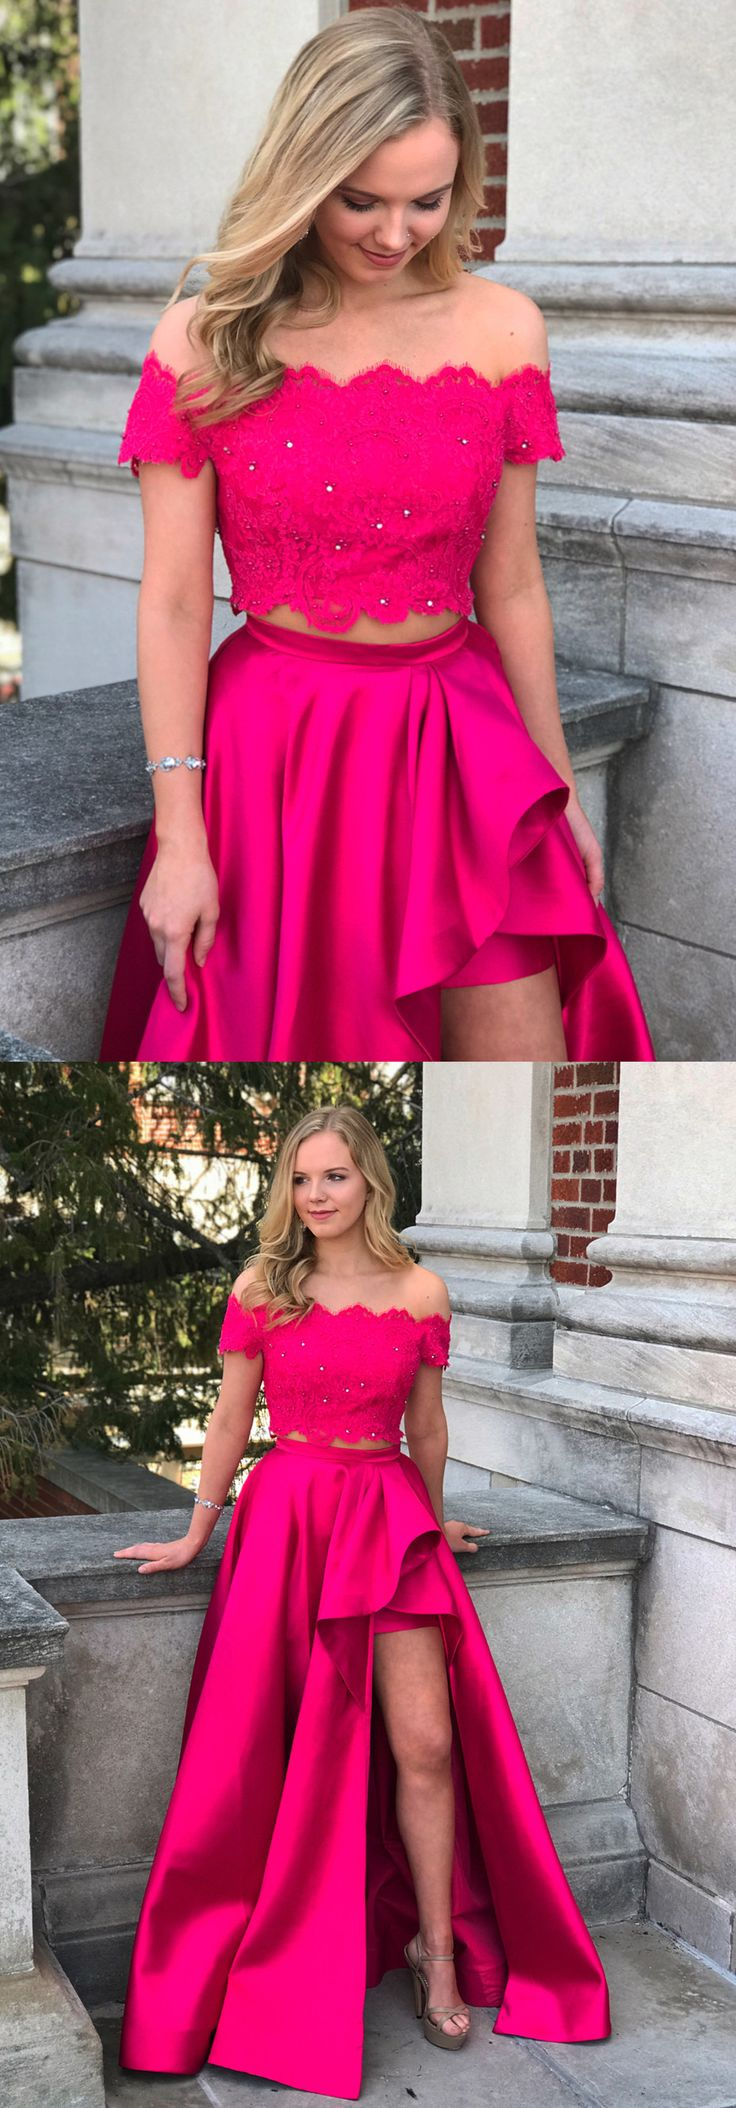 2018 twopiece hot pink long prom dress, off the shoulder hot pink long prom dress with side slits